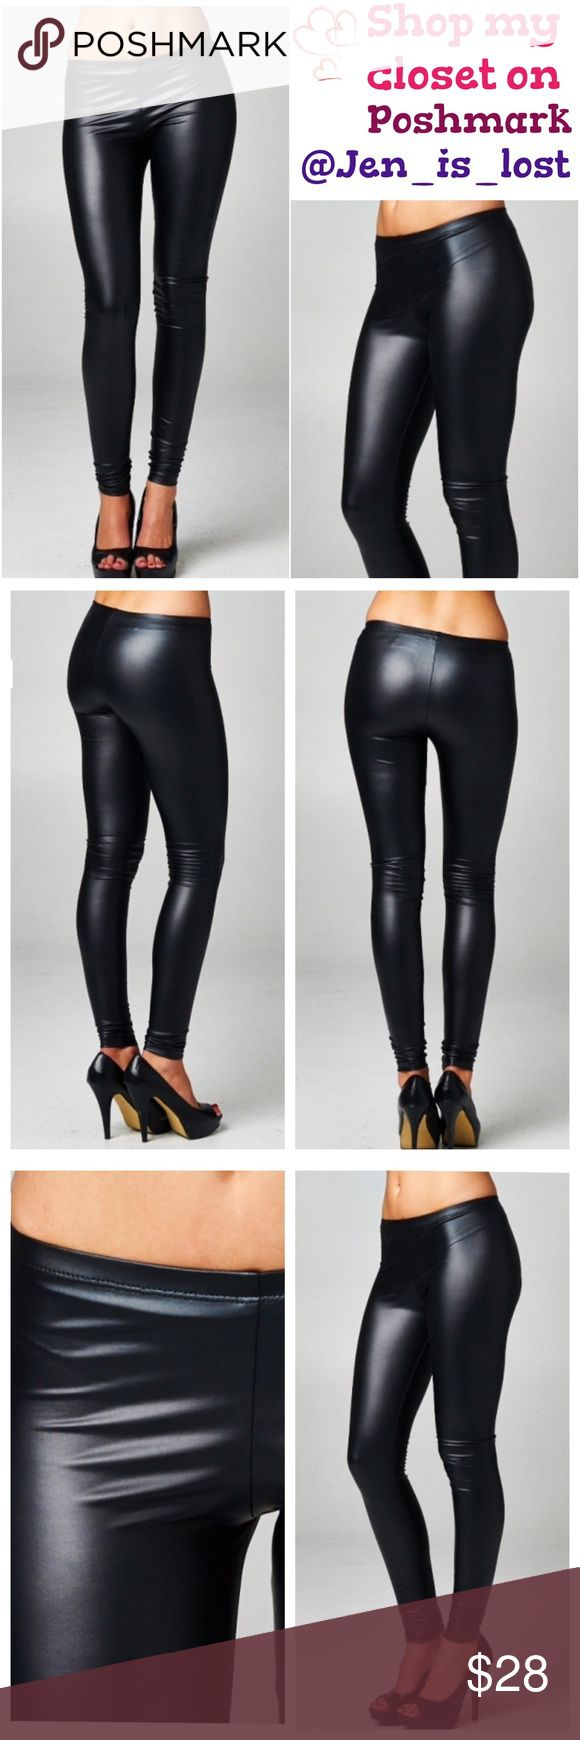 🔶Was $28🔶 Faux Leather Leggings Fitted legging. Elastic at waist. This legging is made with medium weight pleather fabric that is soft and has great stretch. Fabric: Faux Leather Content: 95% Polyester, 5% Spandex Pants Leggings